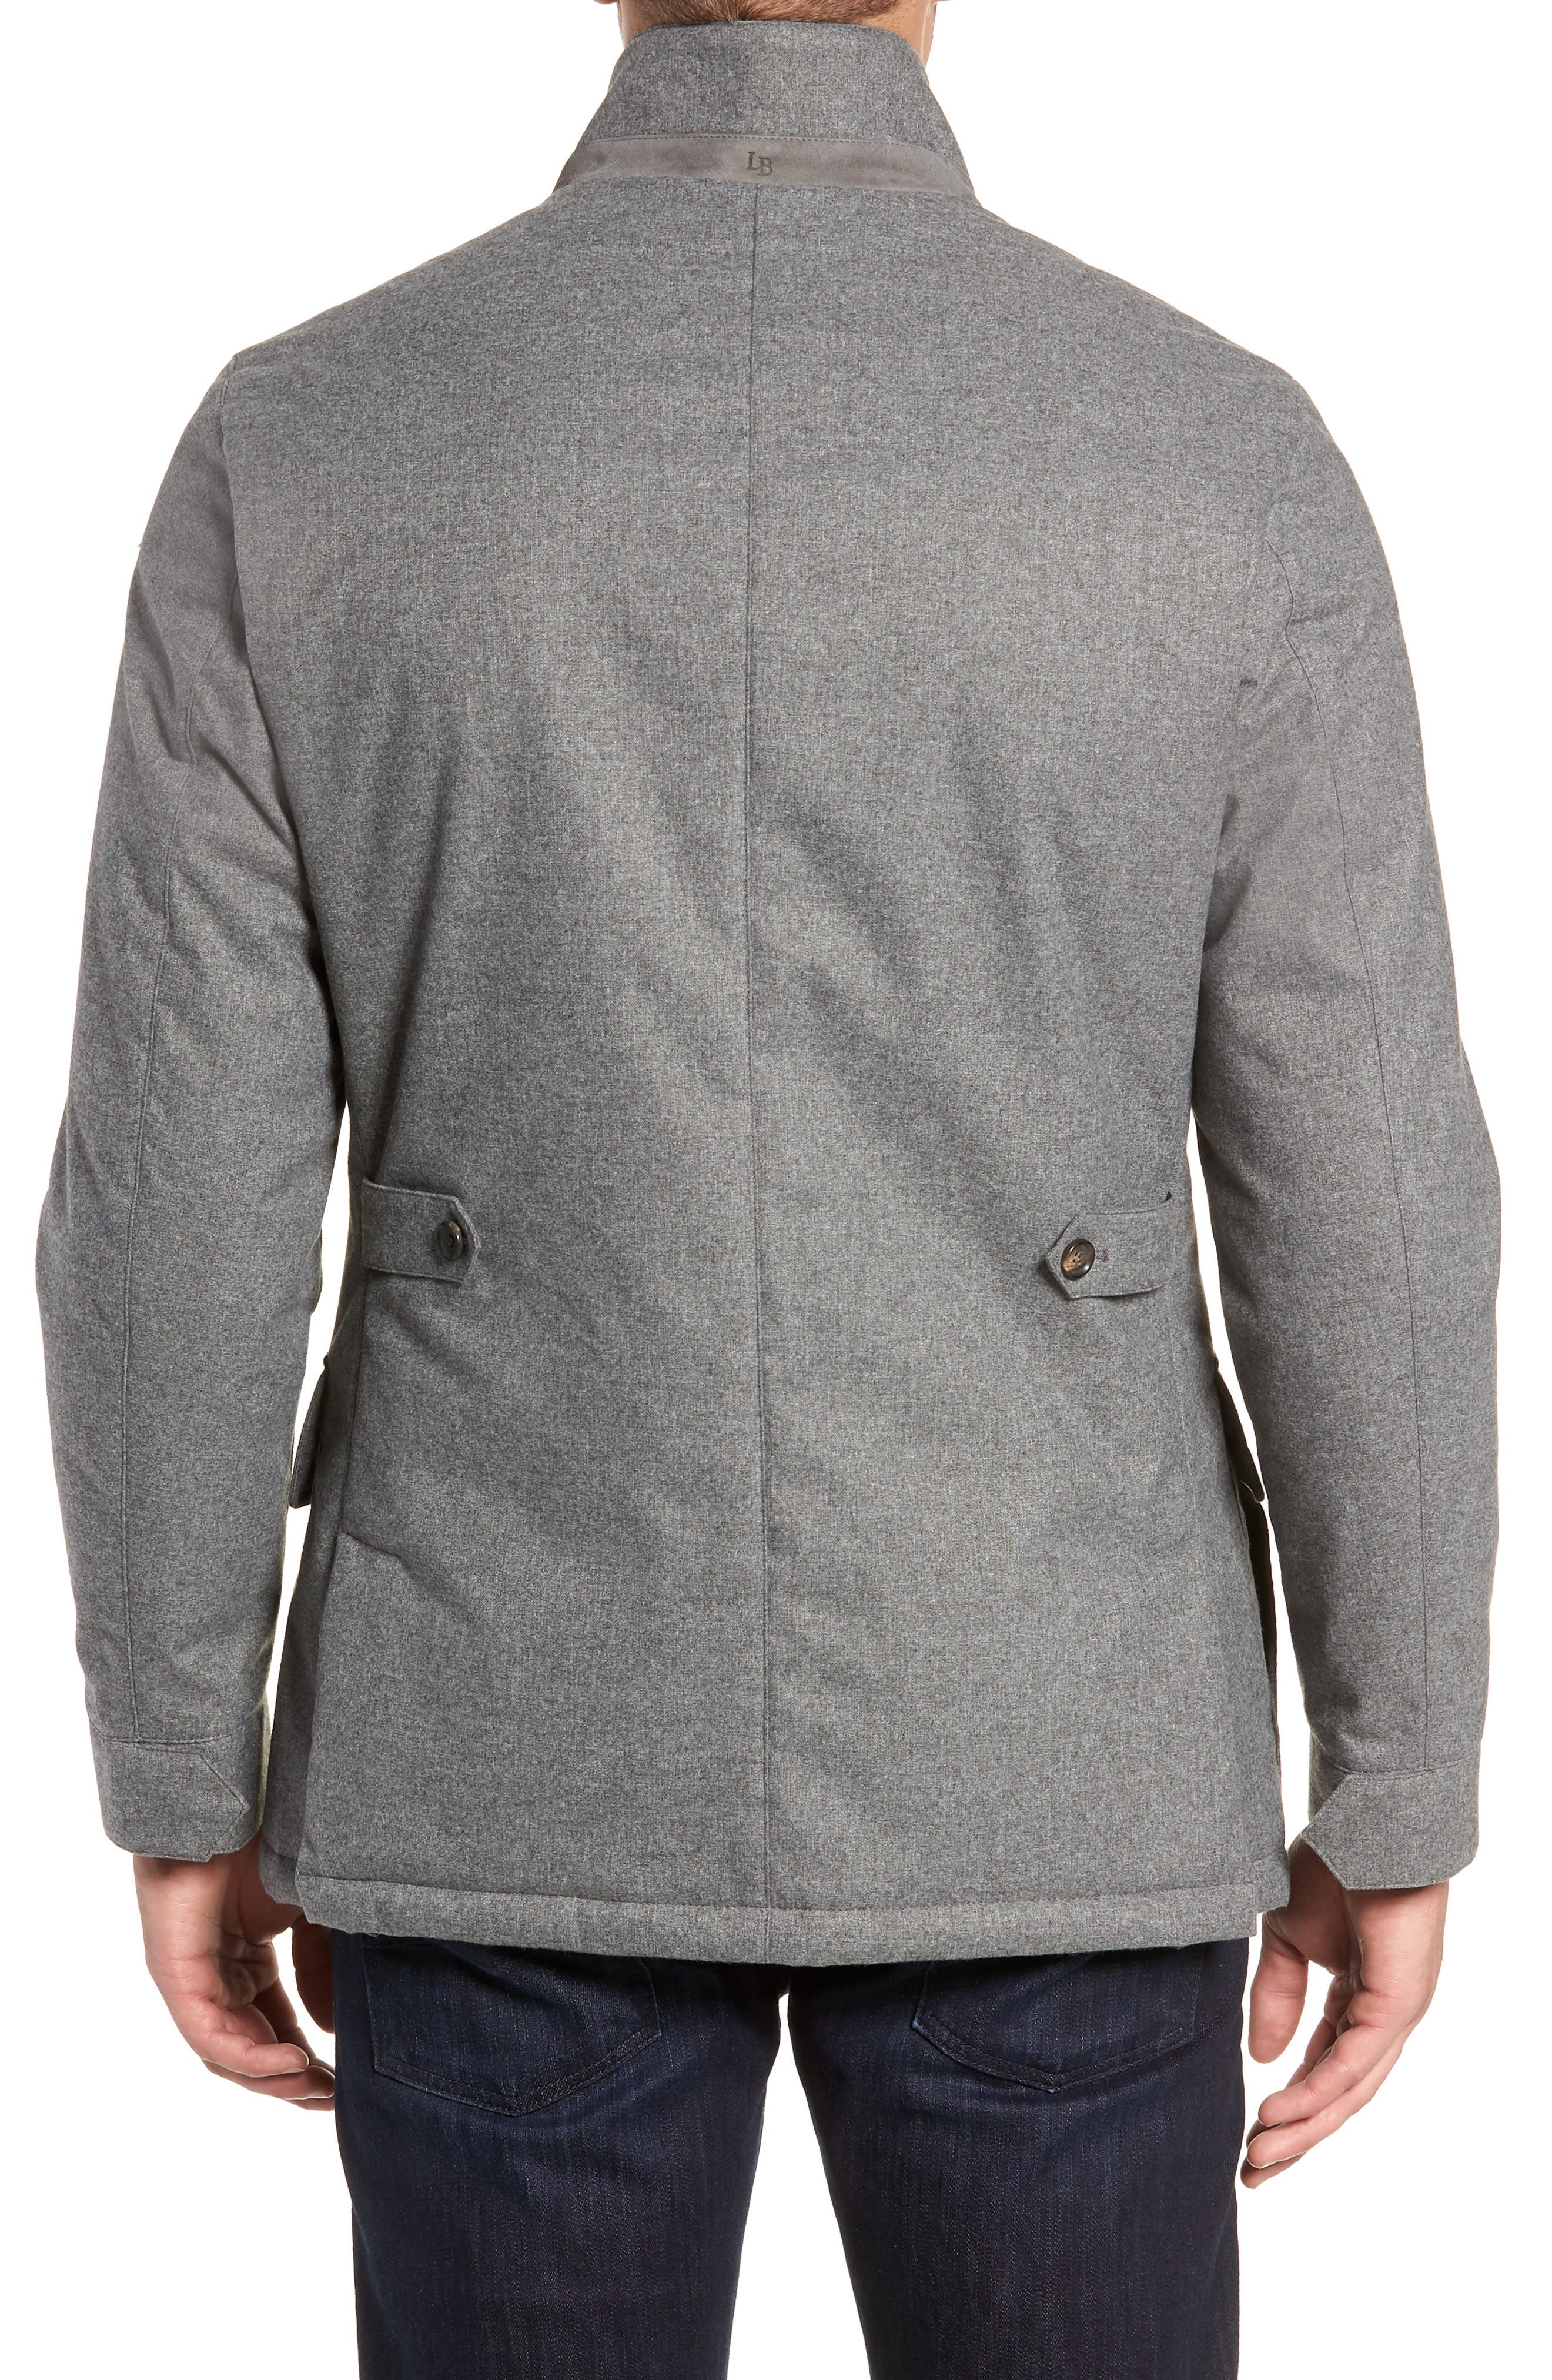 Stretch Flannel Jacket,                             Alternate thumbnail 2, color,                             GREY